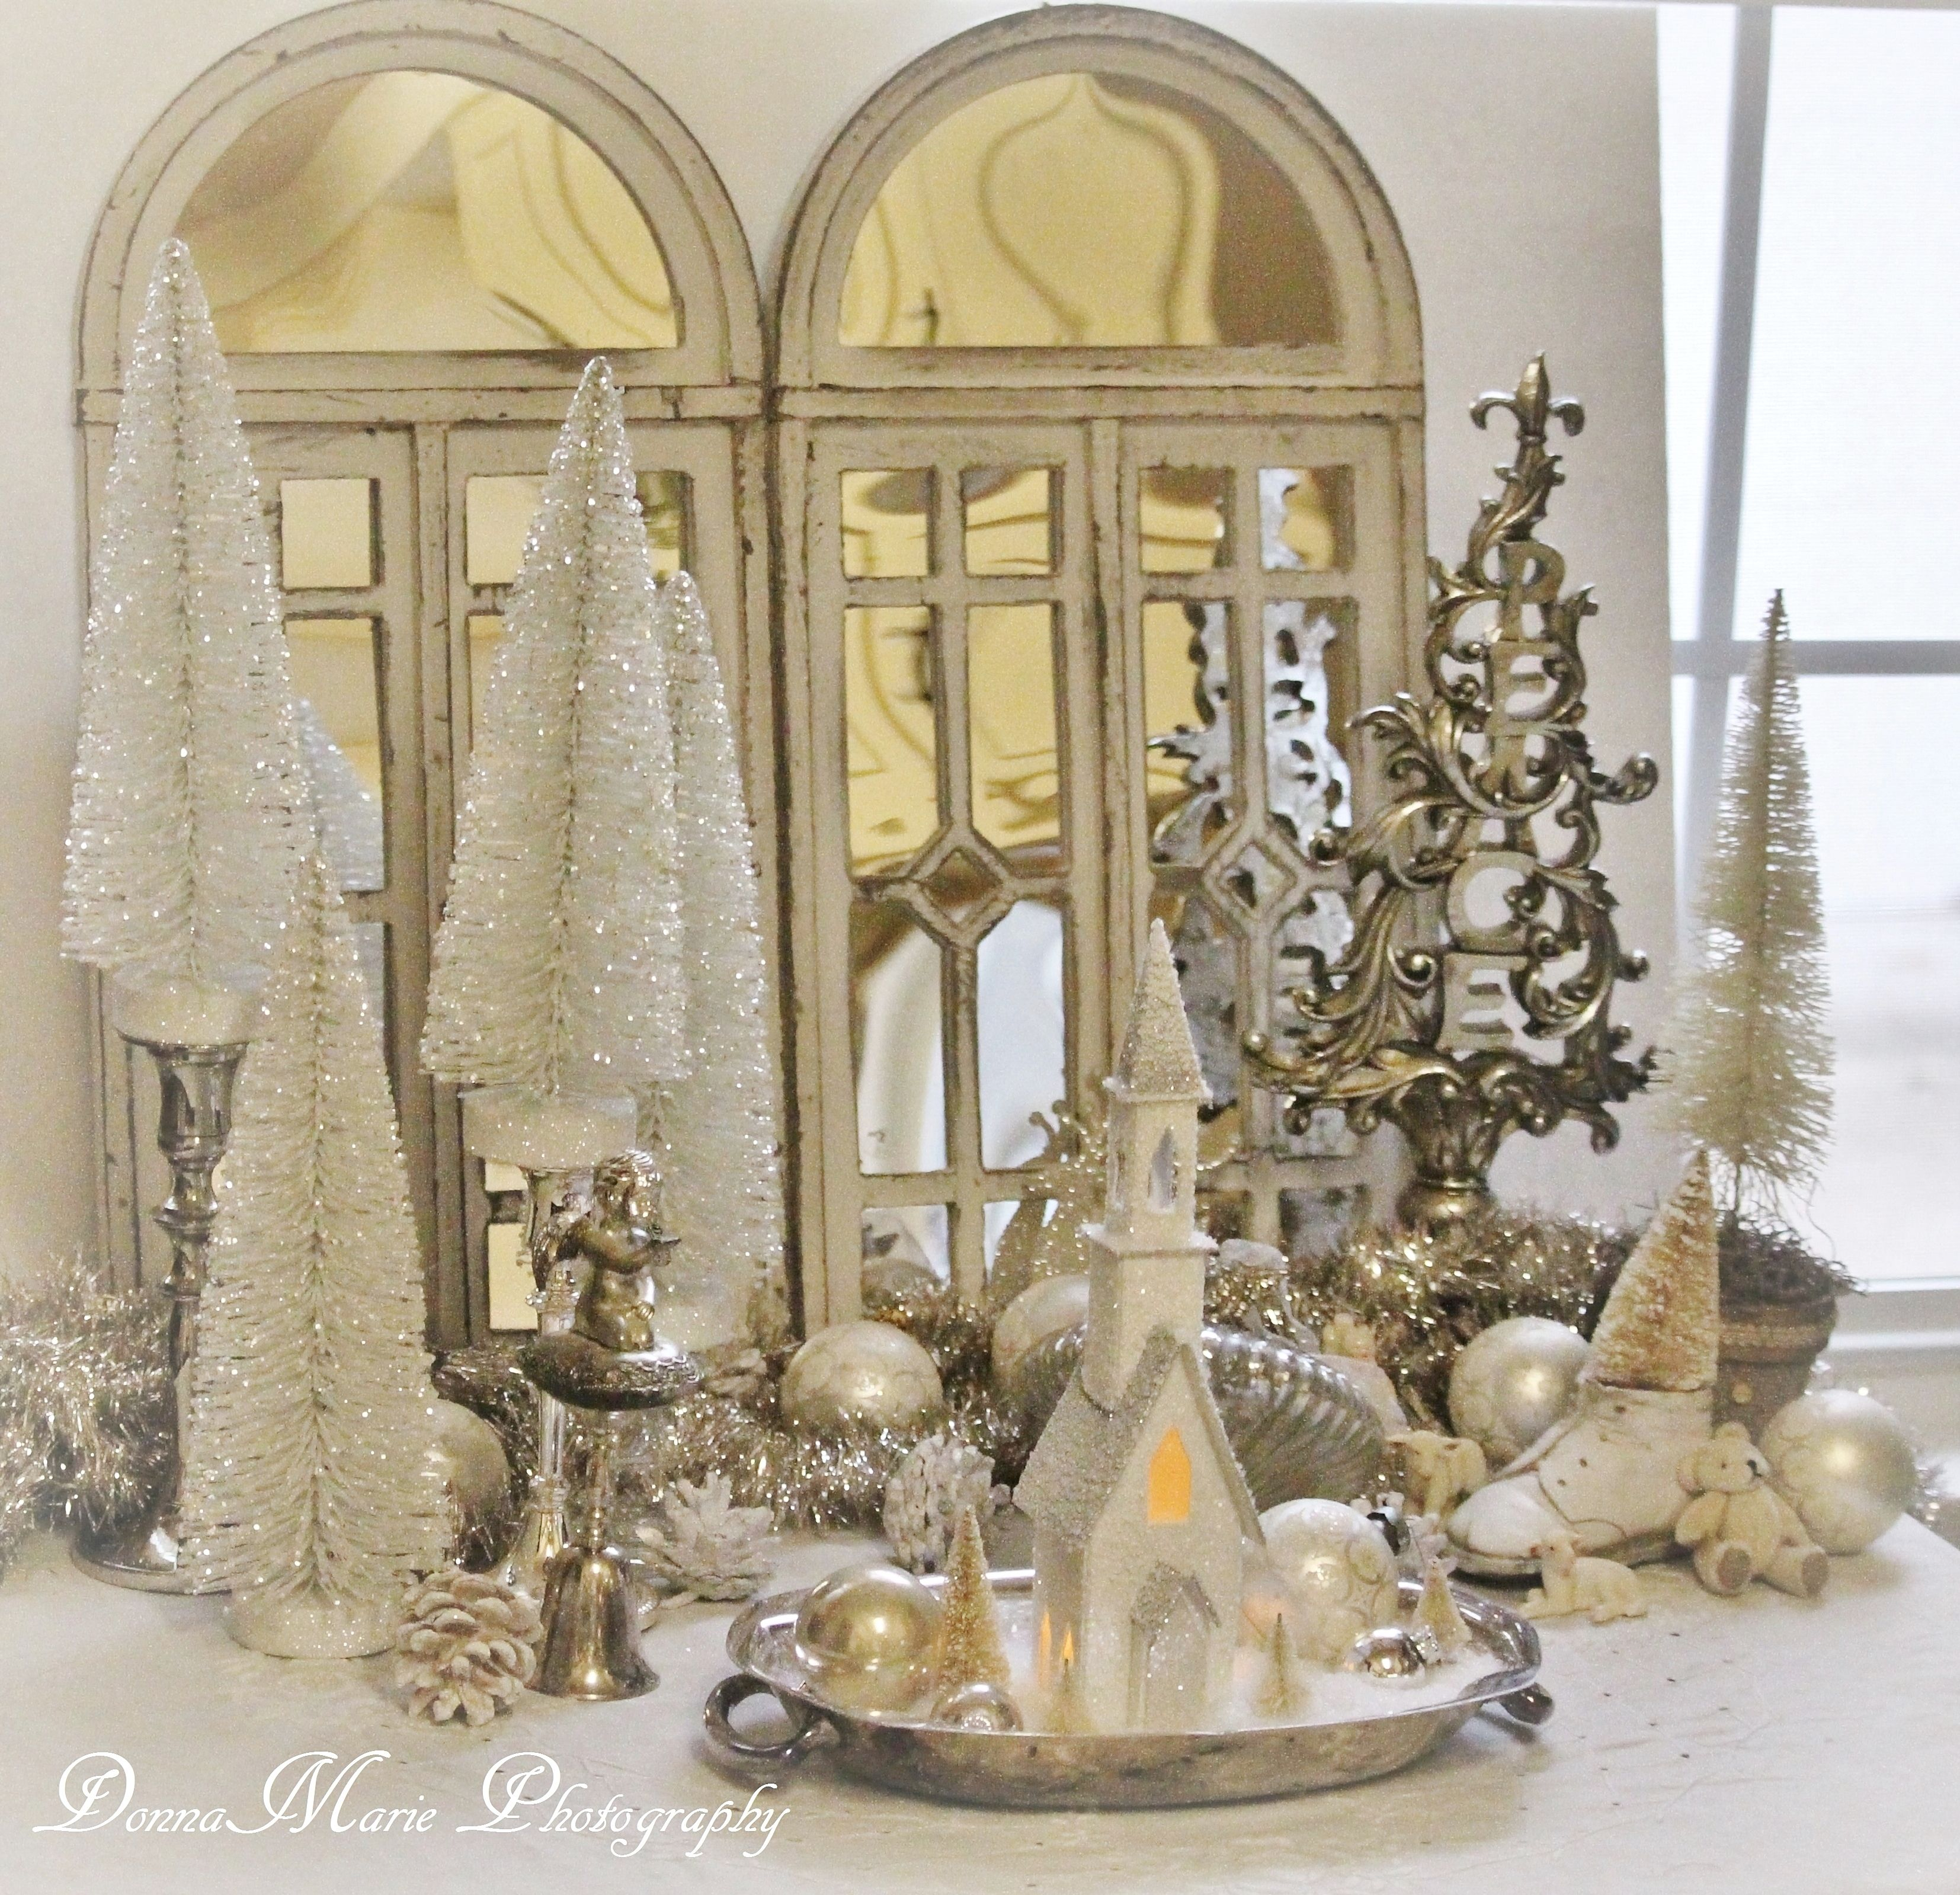 Christmas decorations for church windows 4k pictures 4k pictures flower arrangements for church windows flowers healthy wedding flower arrangements for church windows flowers healthy wedding window decorations images junglespirit Gallery